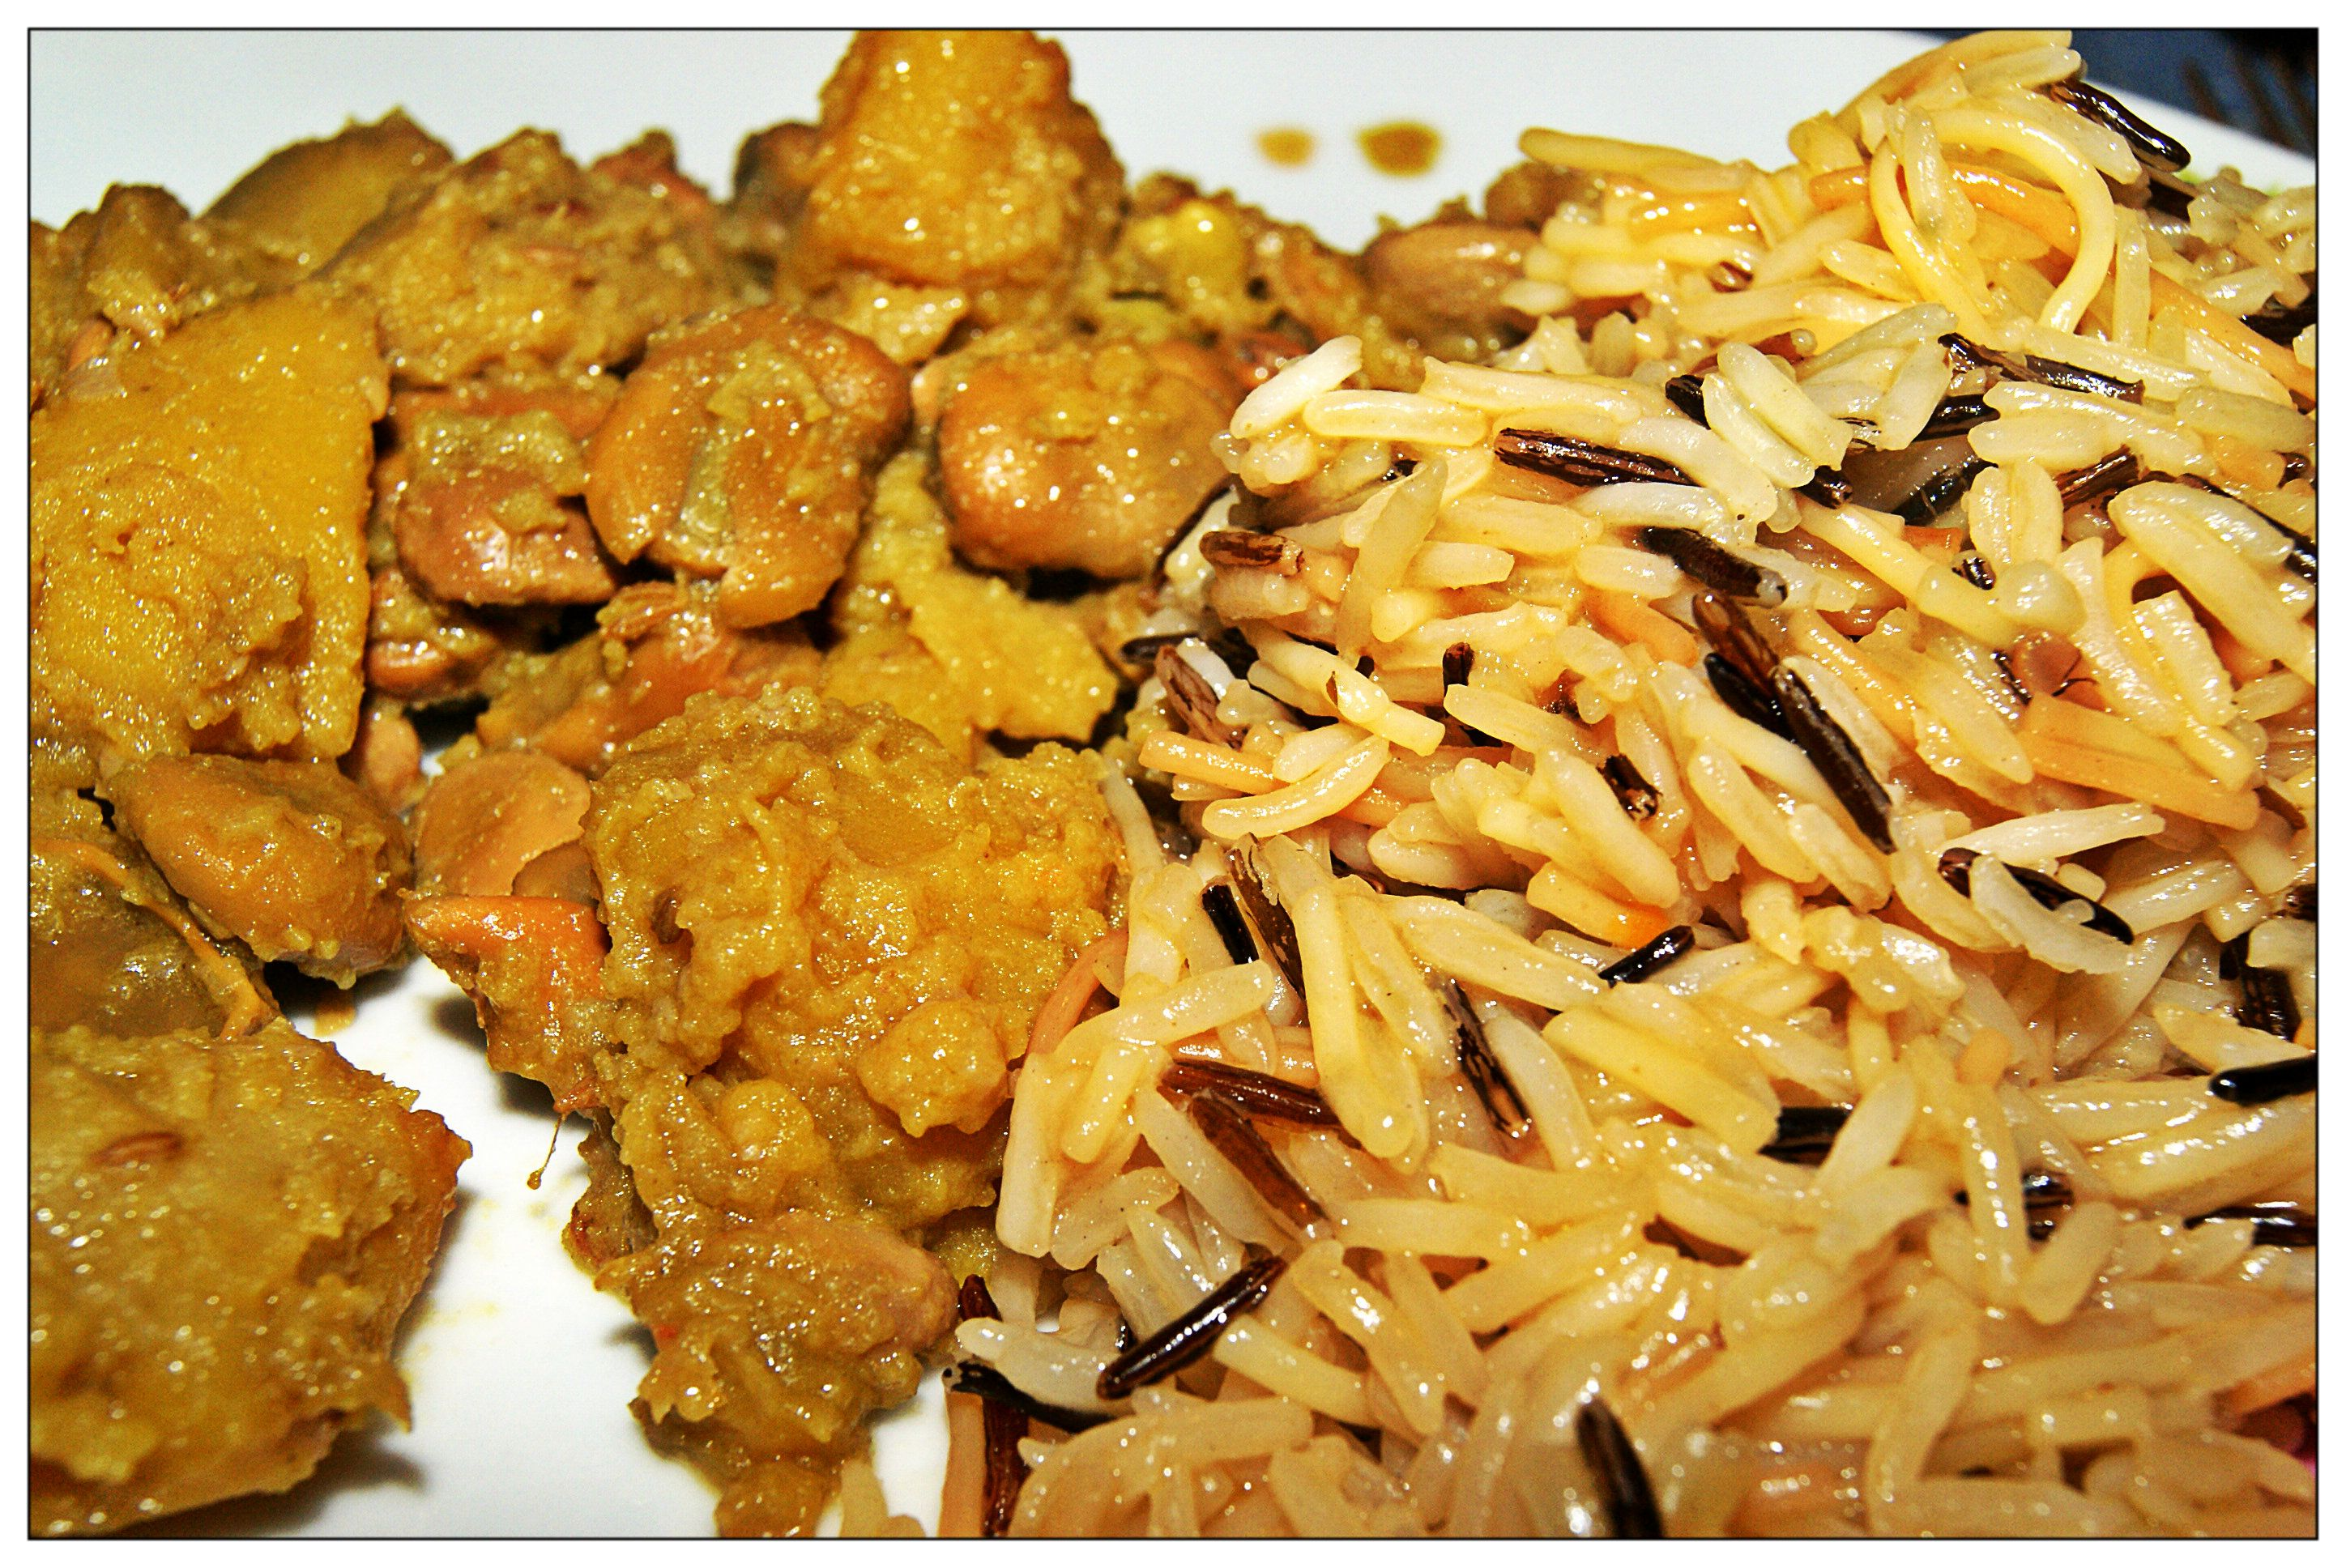 Potatoes and beans with oriental pilaf rice - patate e fave all'orientale con riso pilav